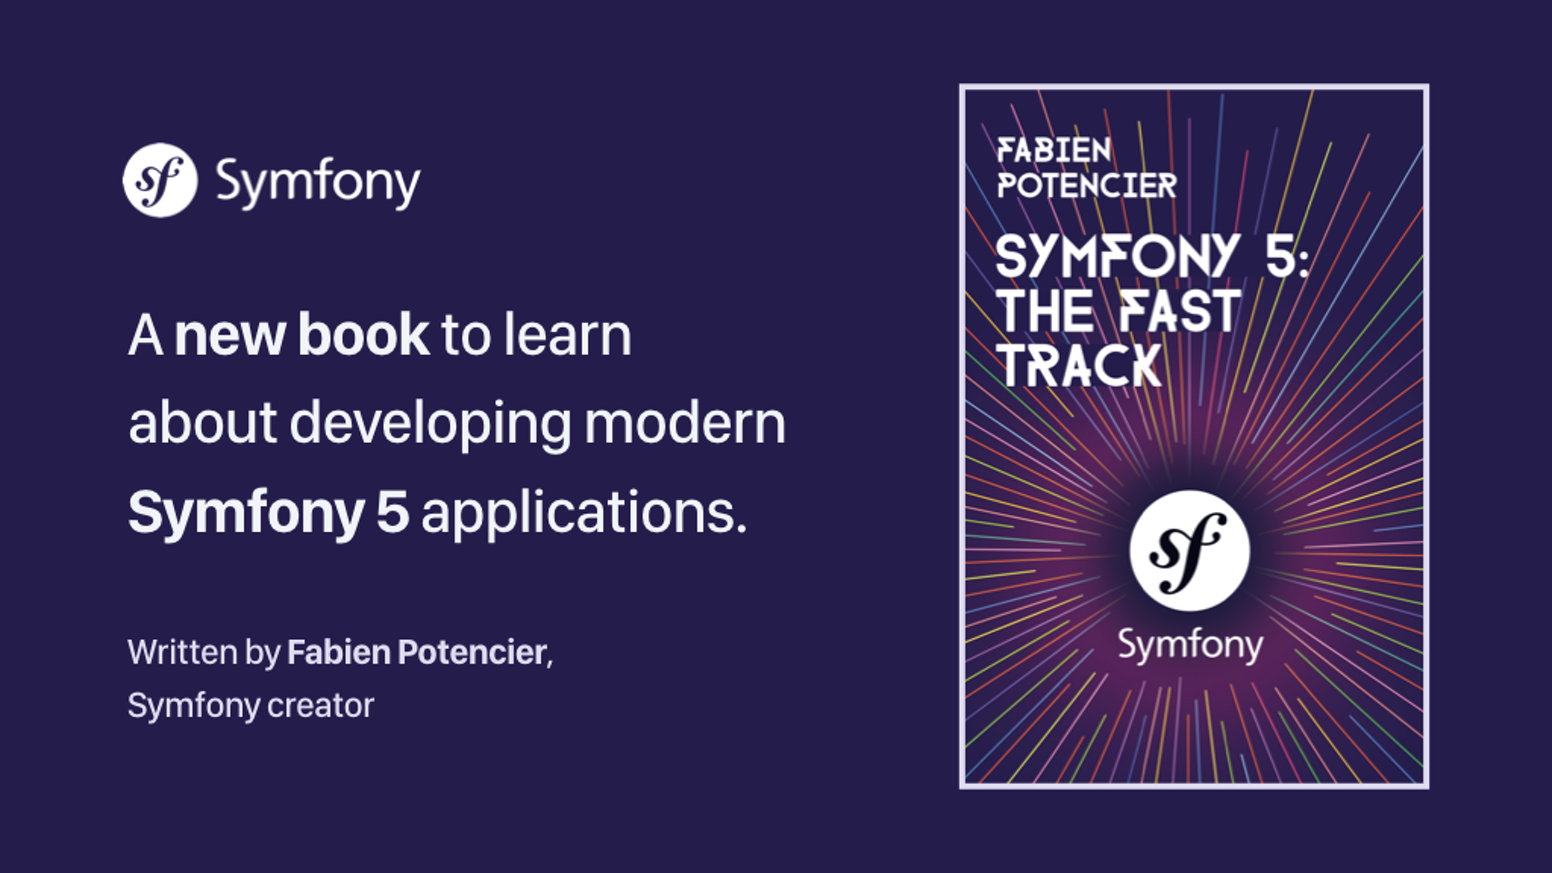 A step by step book about writing applications with Symfony.Learn more at https://symfony.com/book